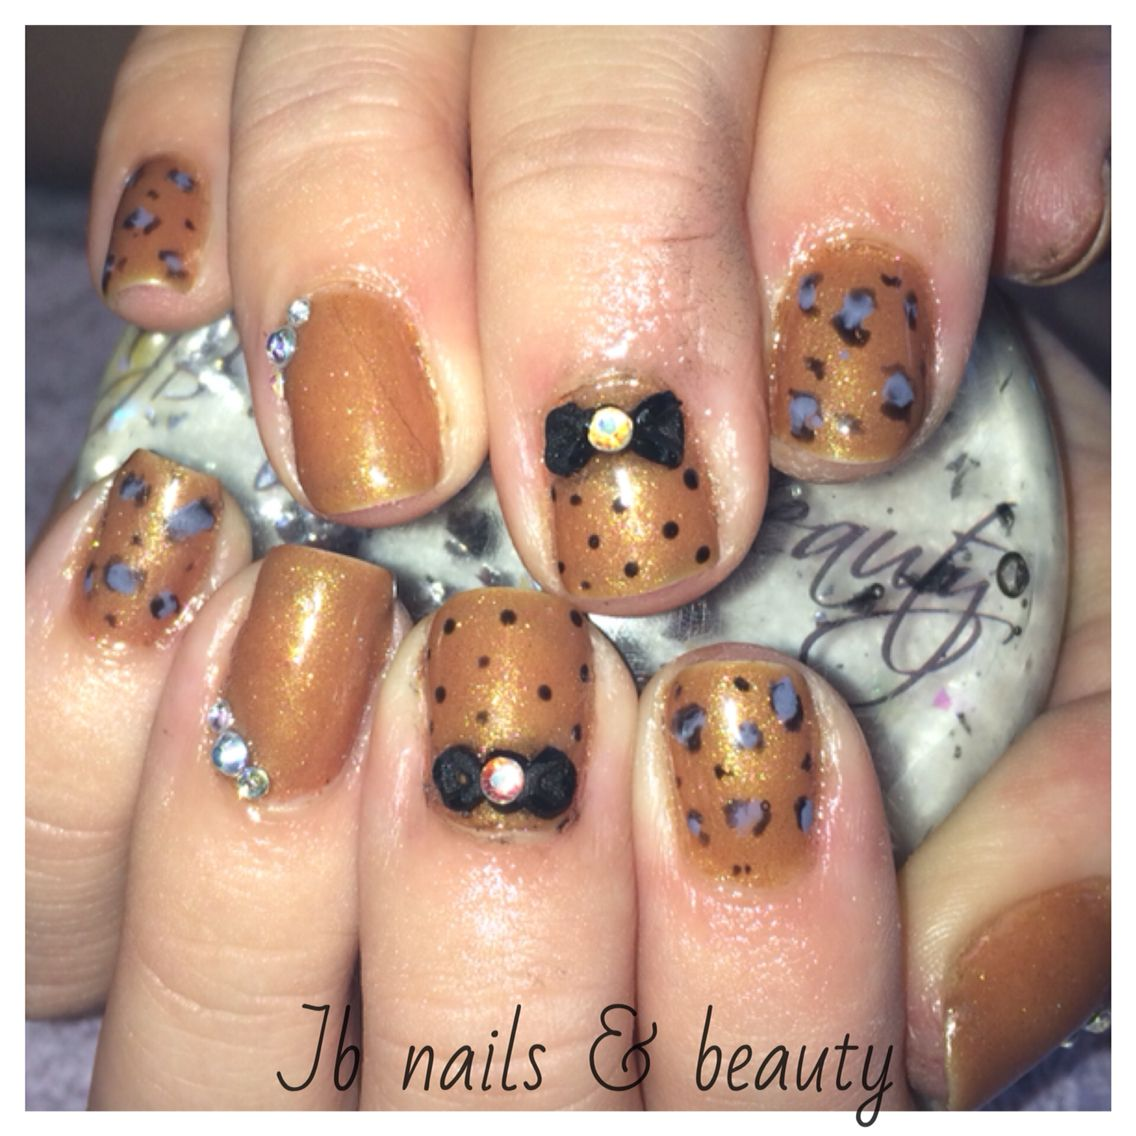 Autumn Gel Polish On Natural Nails With Bows Amp Hand Painted Nail Art Painted Nail Art Nail